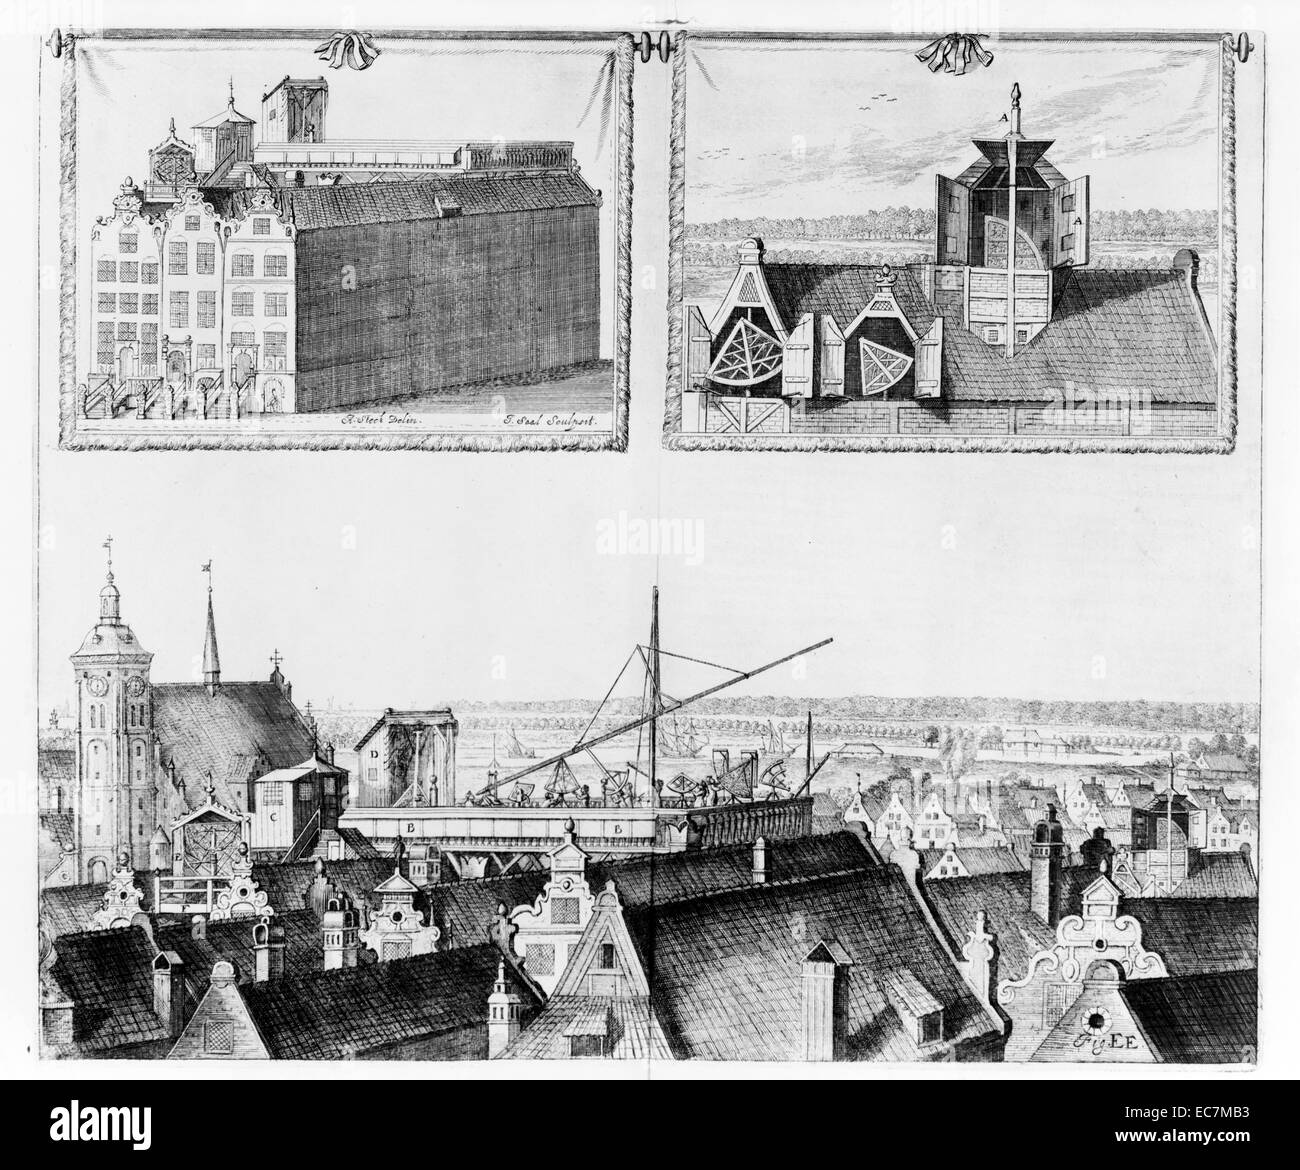 A rooftop astronomical observatory in Danzig, Germany, 1676. - Stock Image